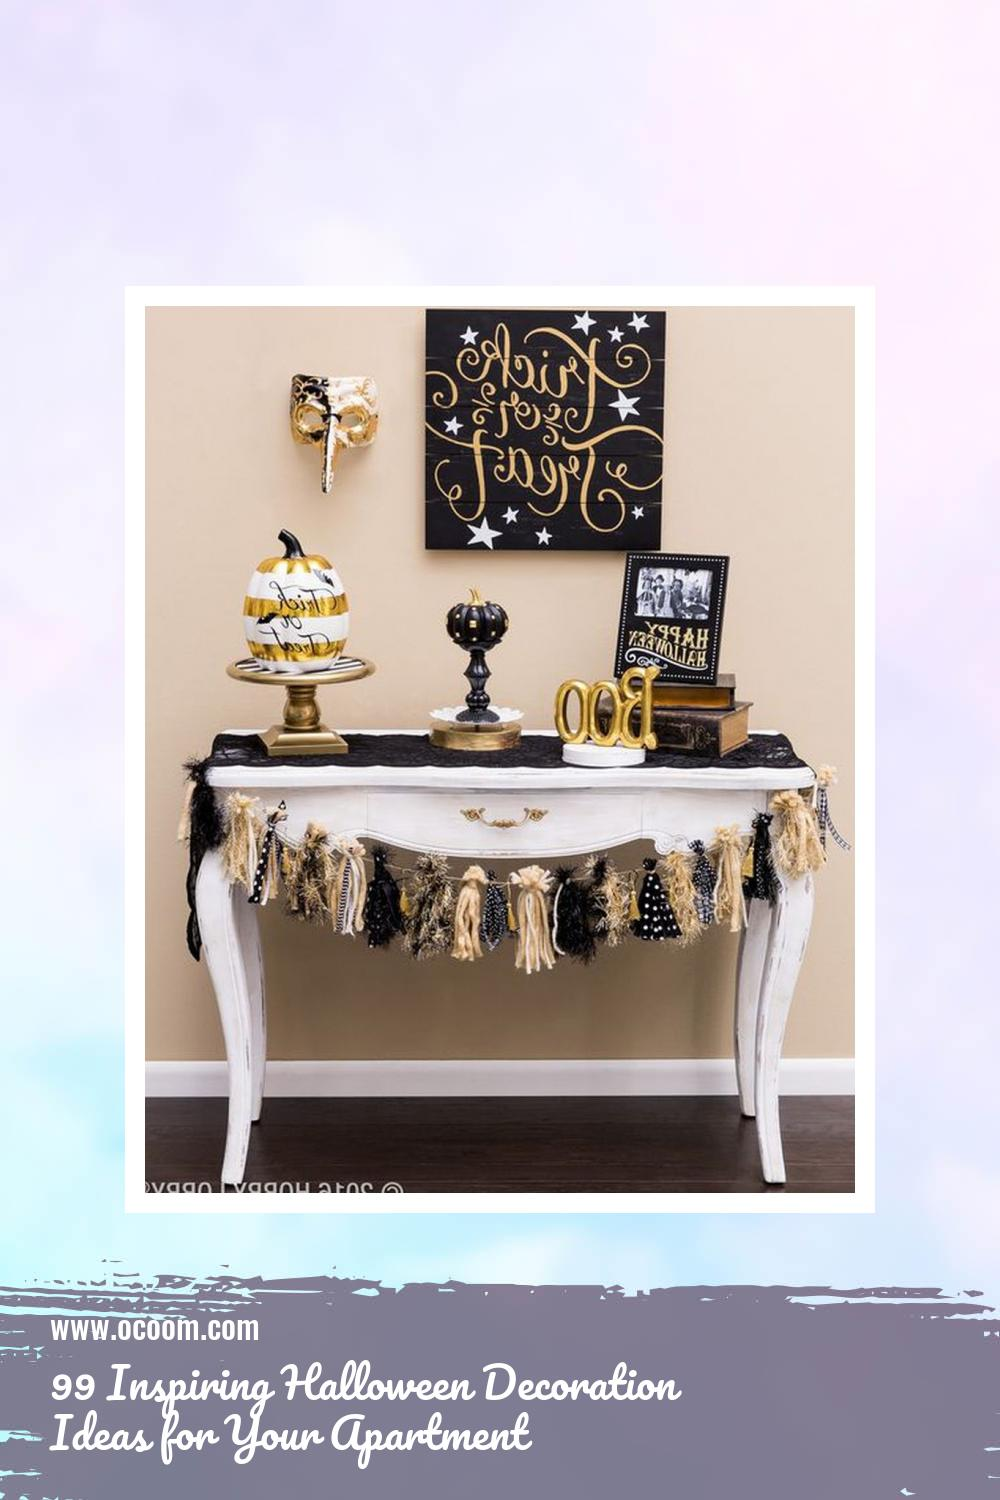 99 Inspiring Halloween Decoration Ideas for Your Apartment 16